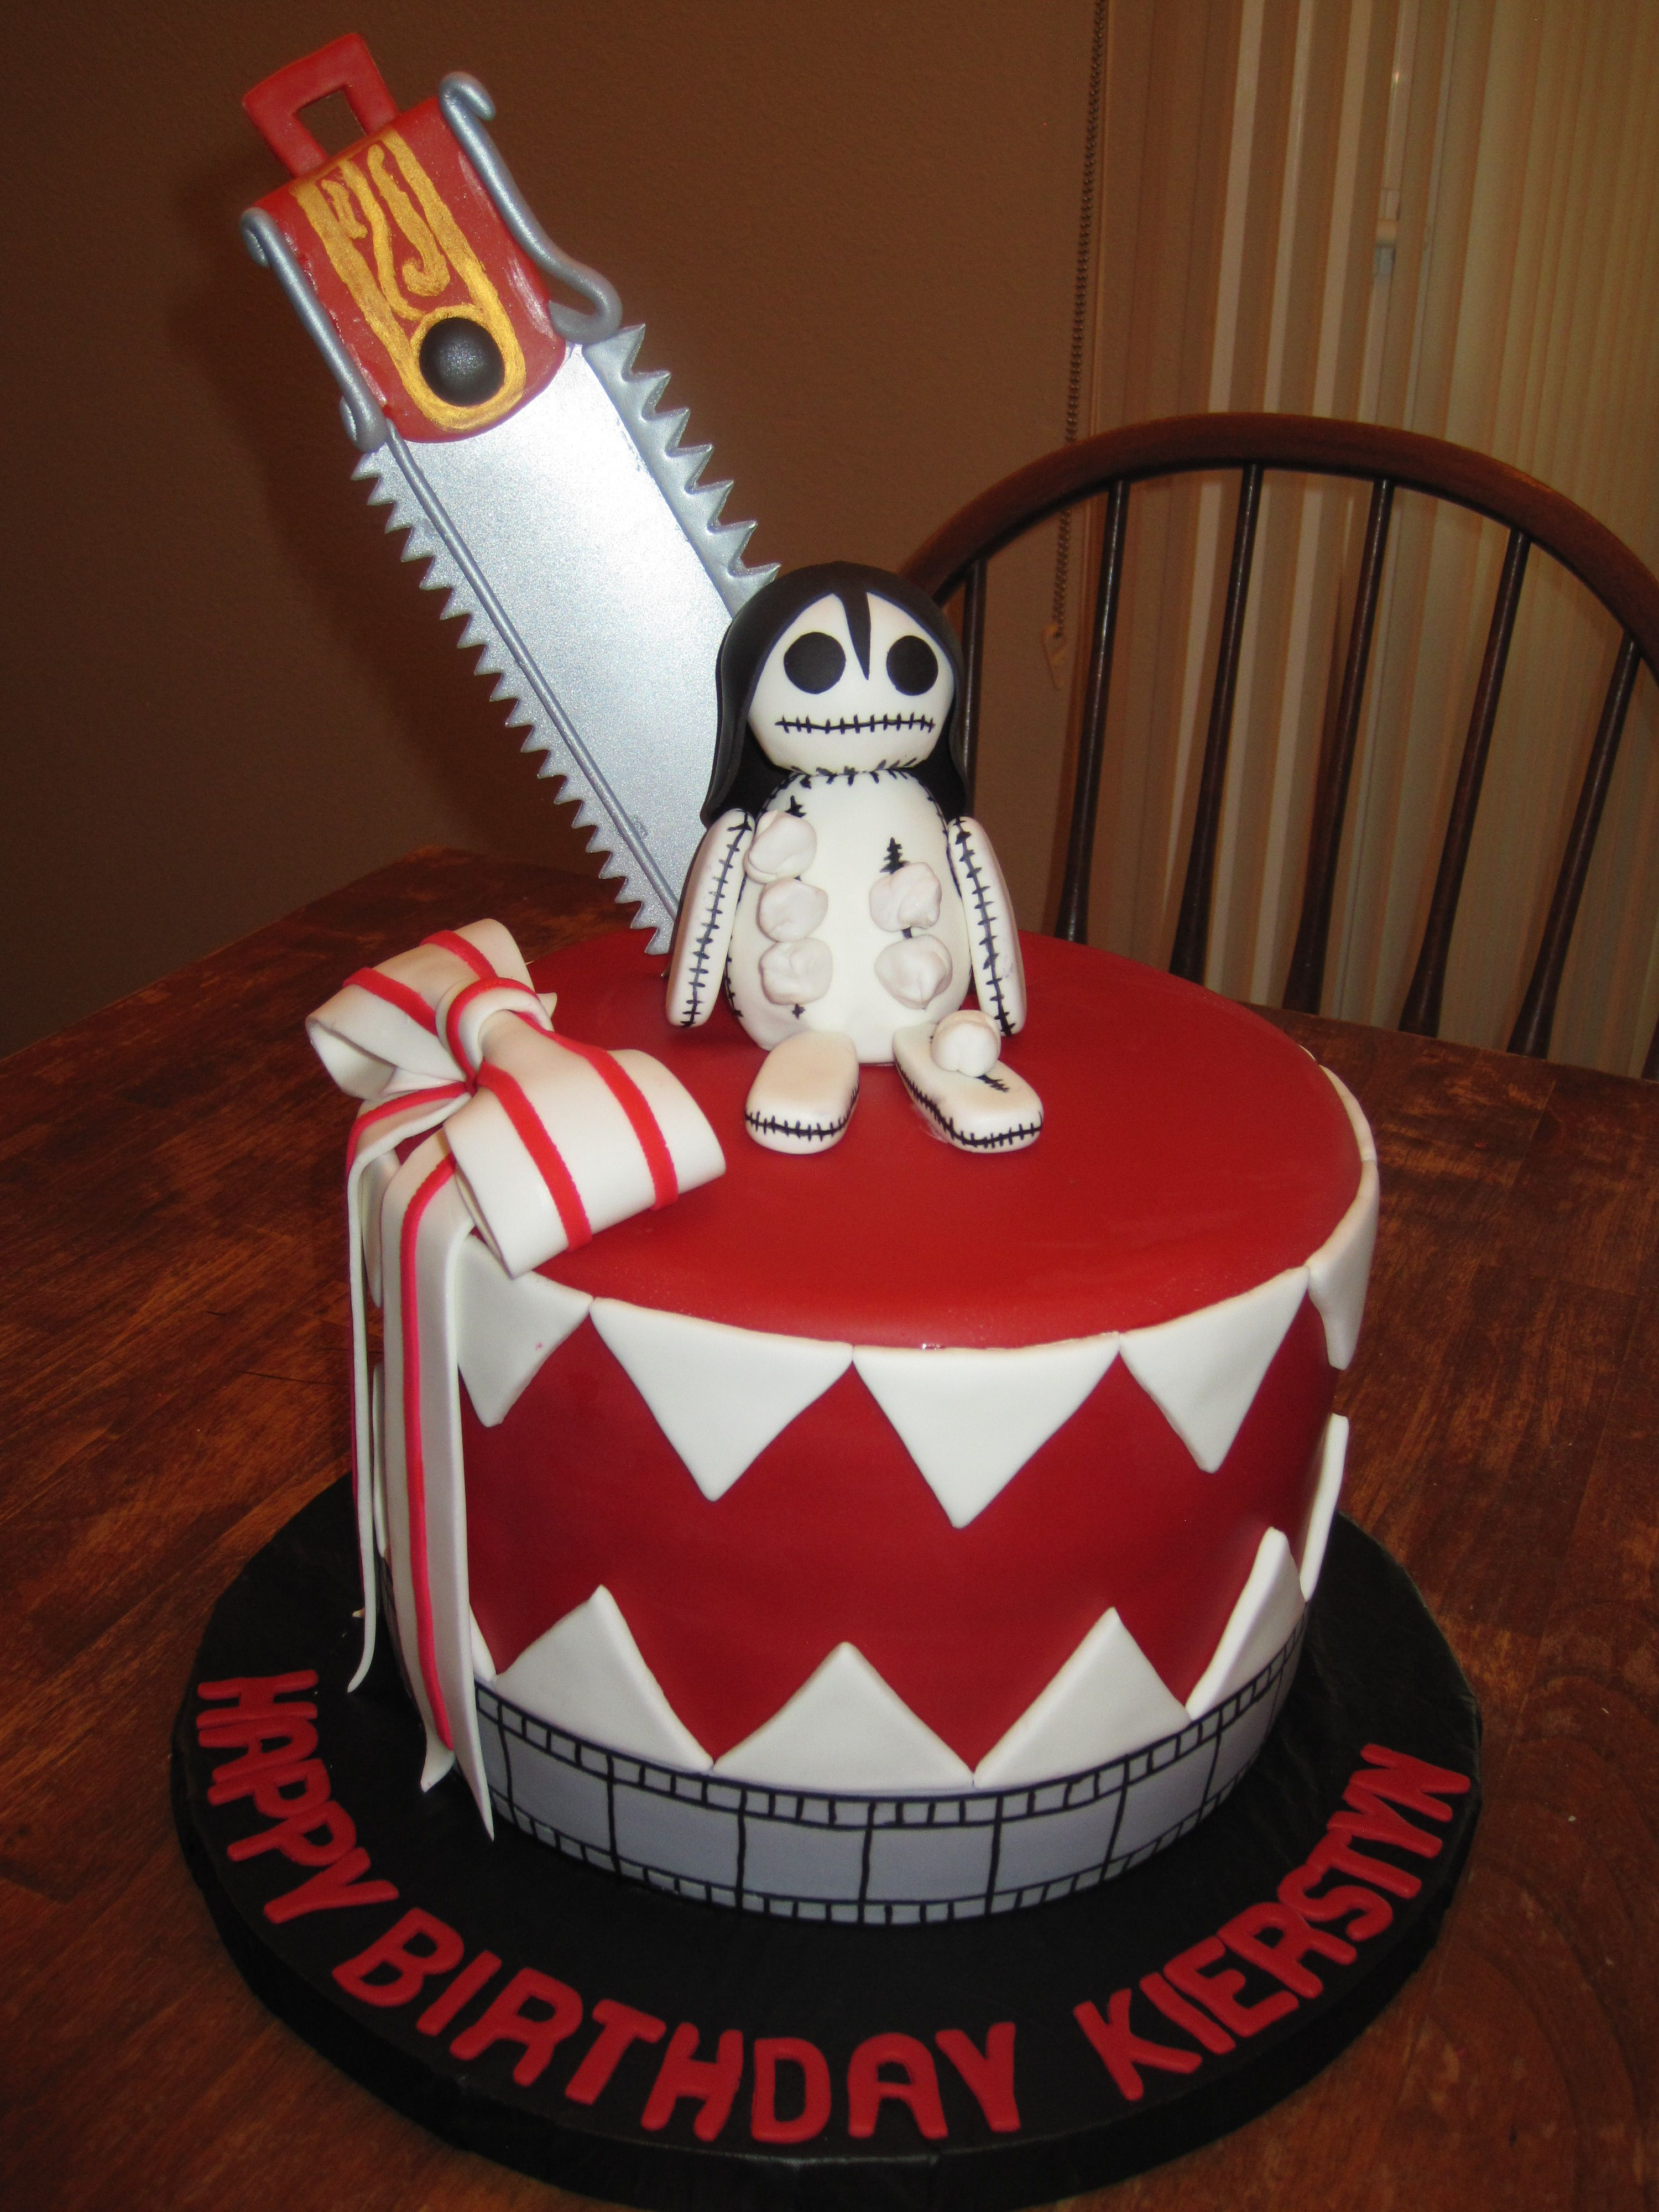 Pin on My Cake and Cupcake Creations